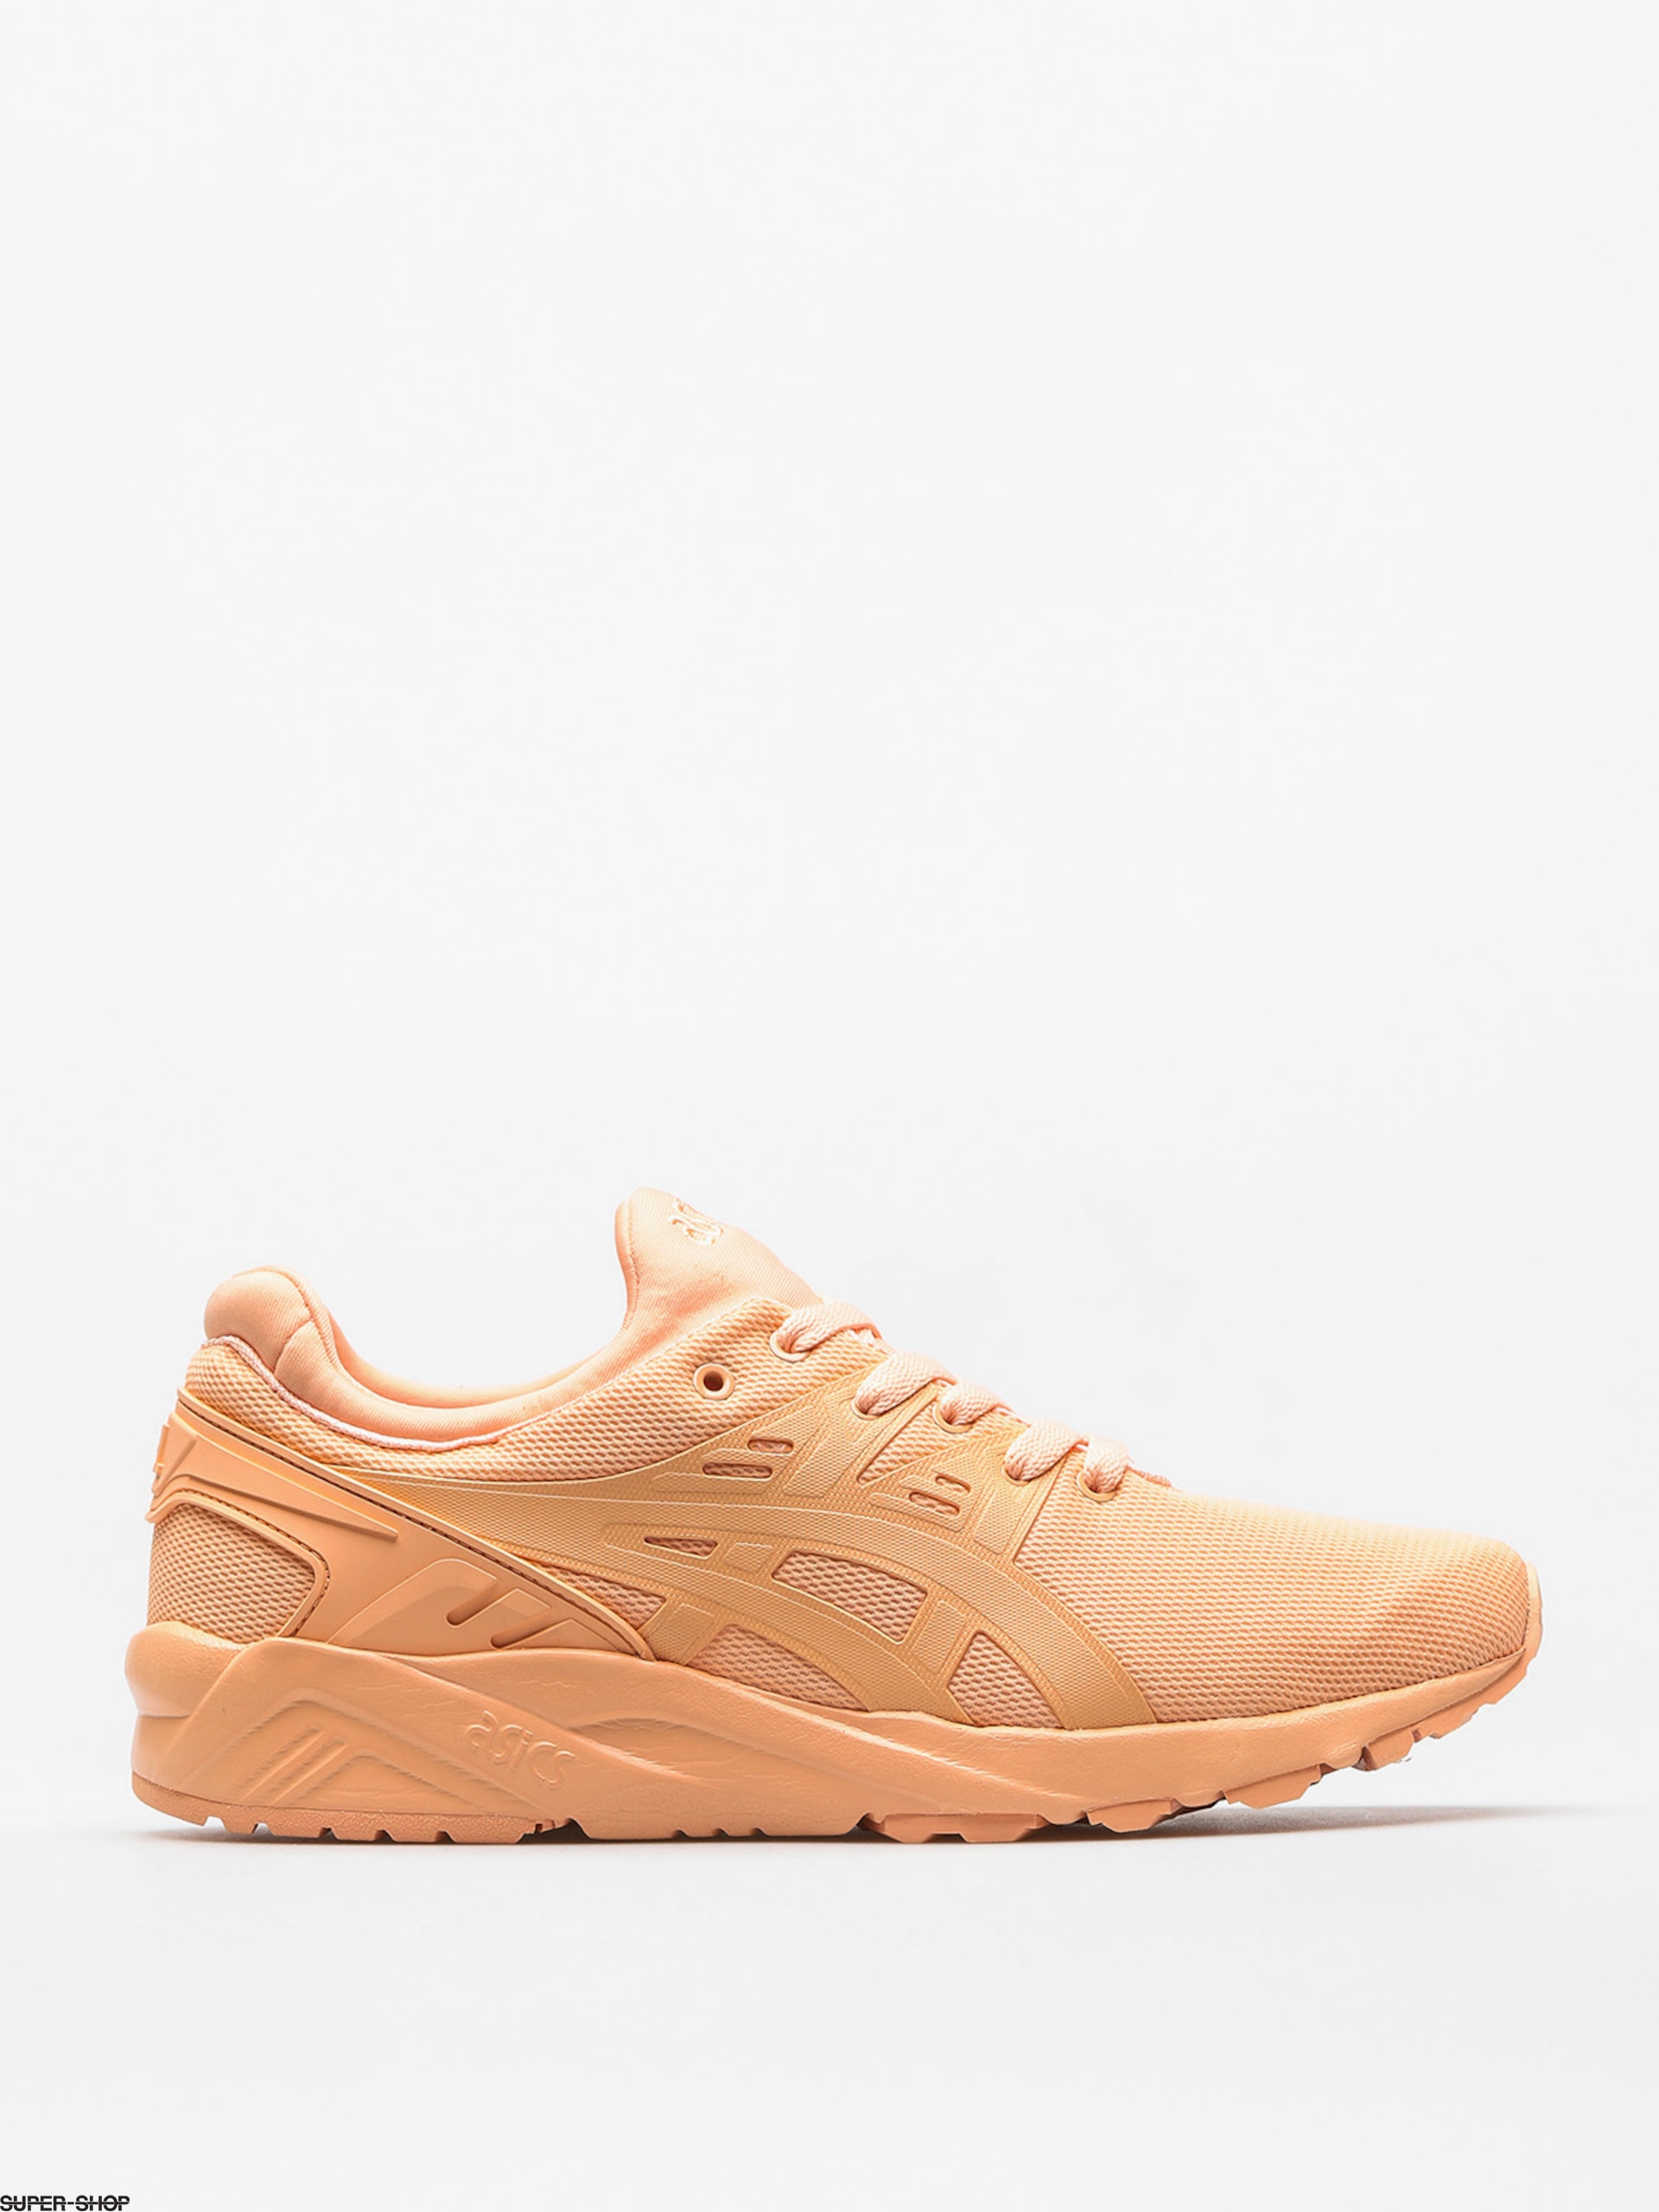 167fa2434878 916932-w1920-asics-tiger-shoes-gel-kayano-trainer-evo -gs-apricot-ice-apricot-ice.jpg